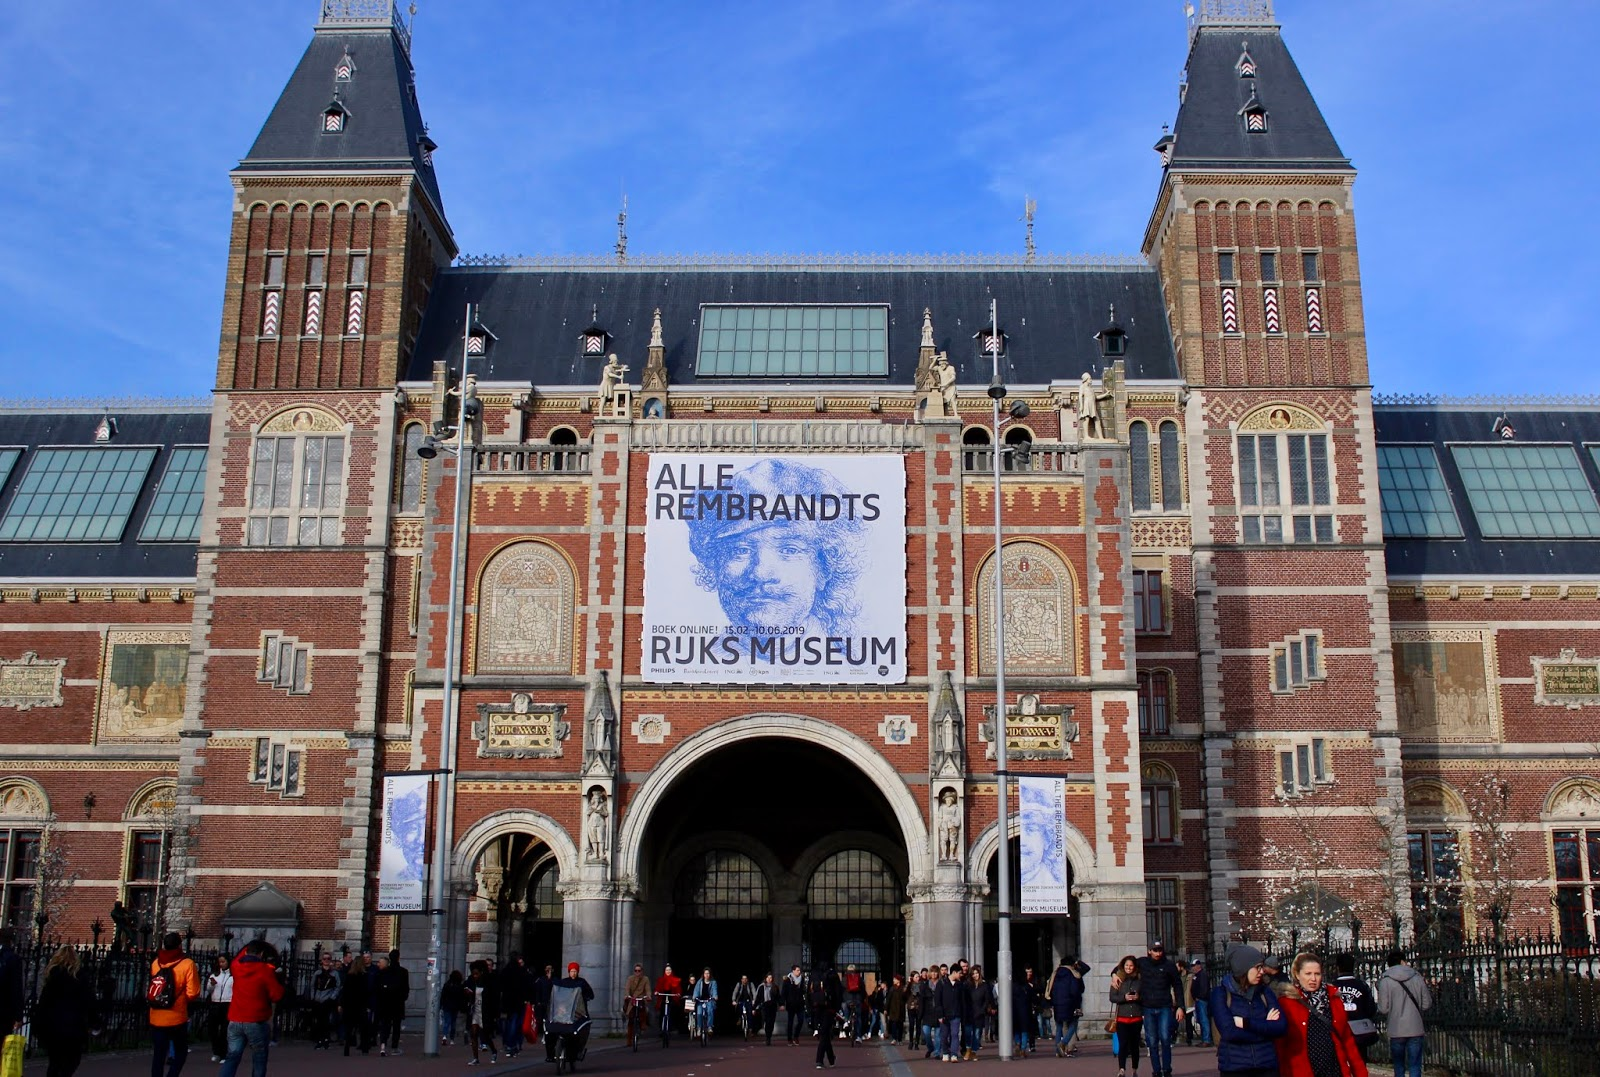 An image of the Rijksmuseum in Amsterdam